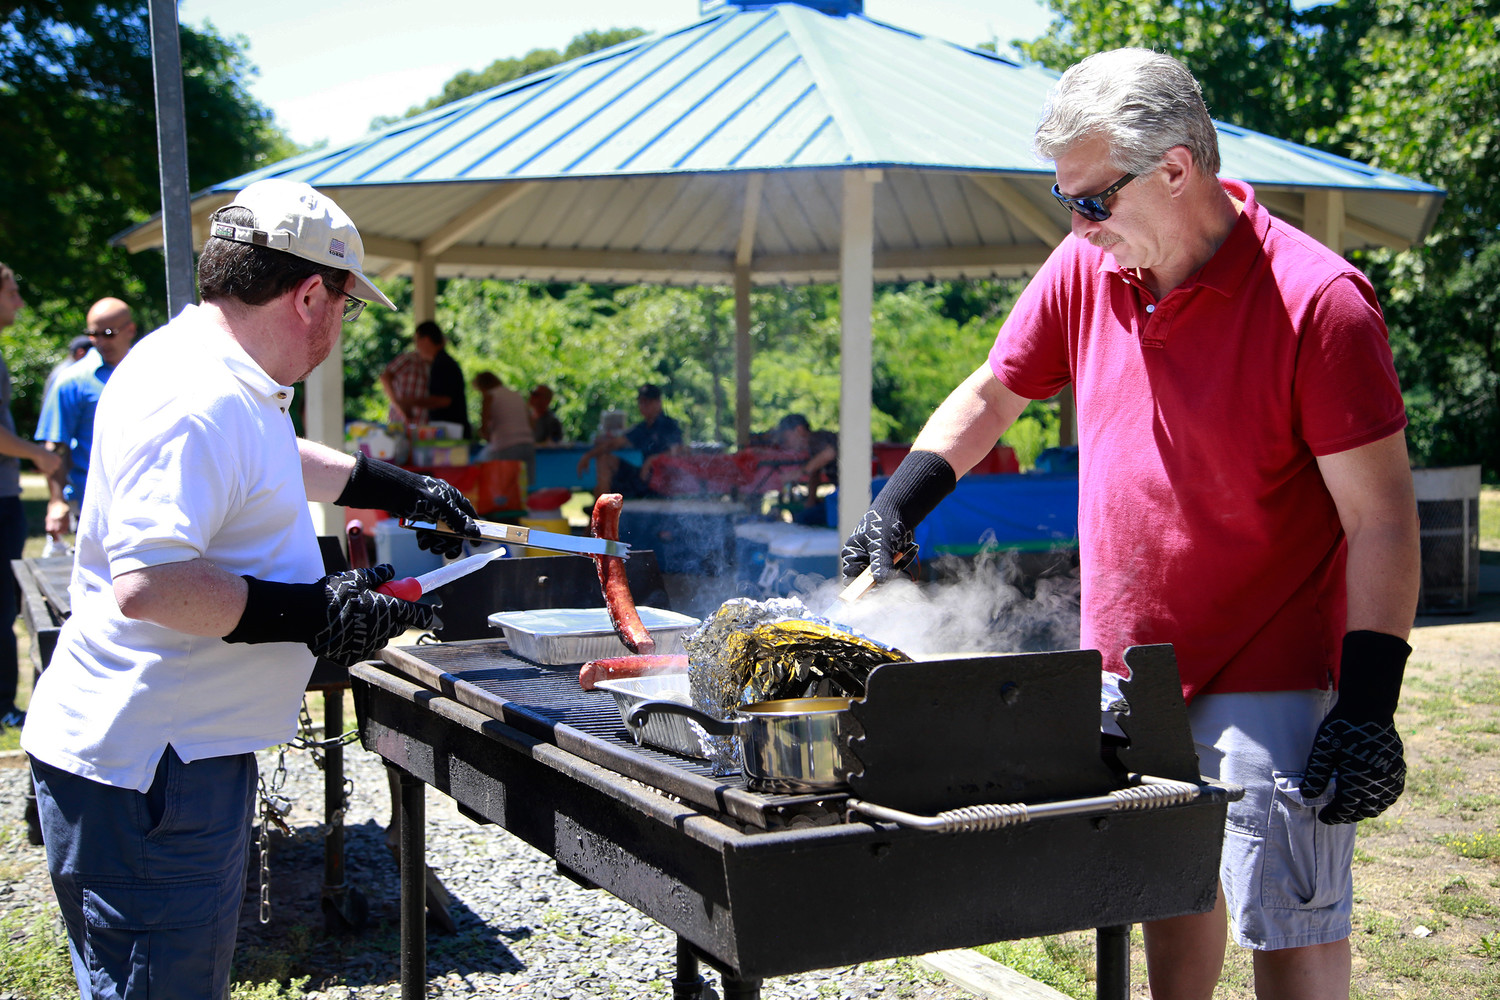 More than 100 people spent a hot summer day in Forest City Community Park in Wantagh, at the annual family picnic of the East Meadow Chamber of Commerce and Kiwanis clubs. To prepare for the feast, Eric Vogel flipped kielbasa while Jay Steinmetz tended to the clams.